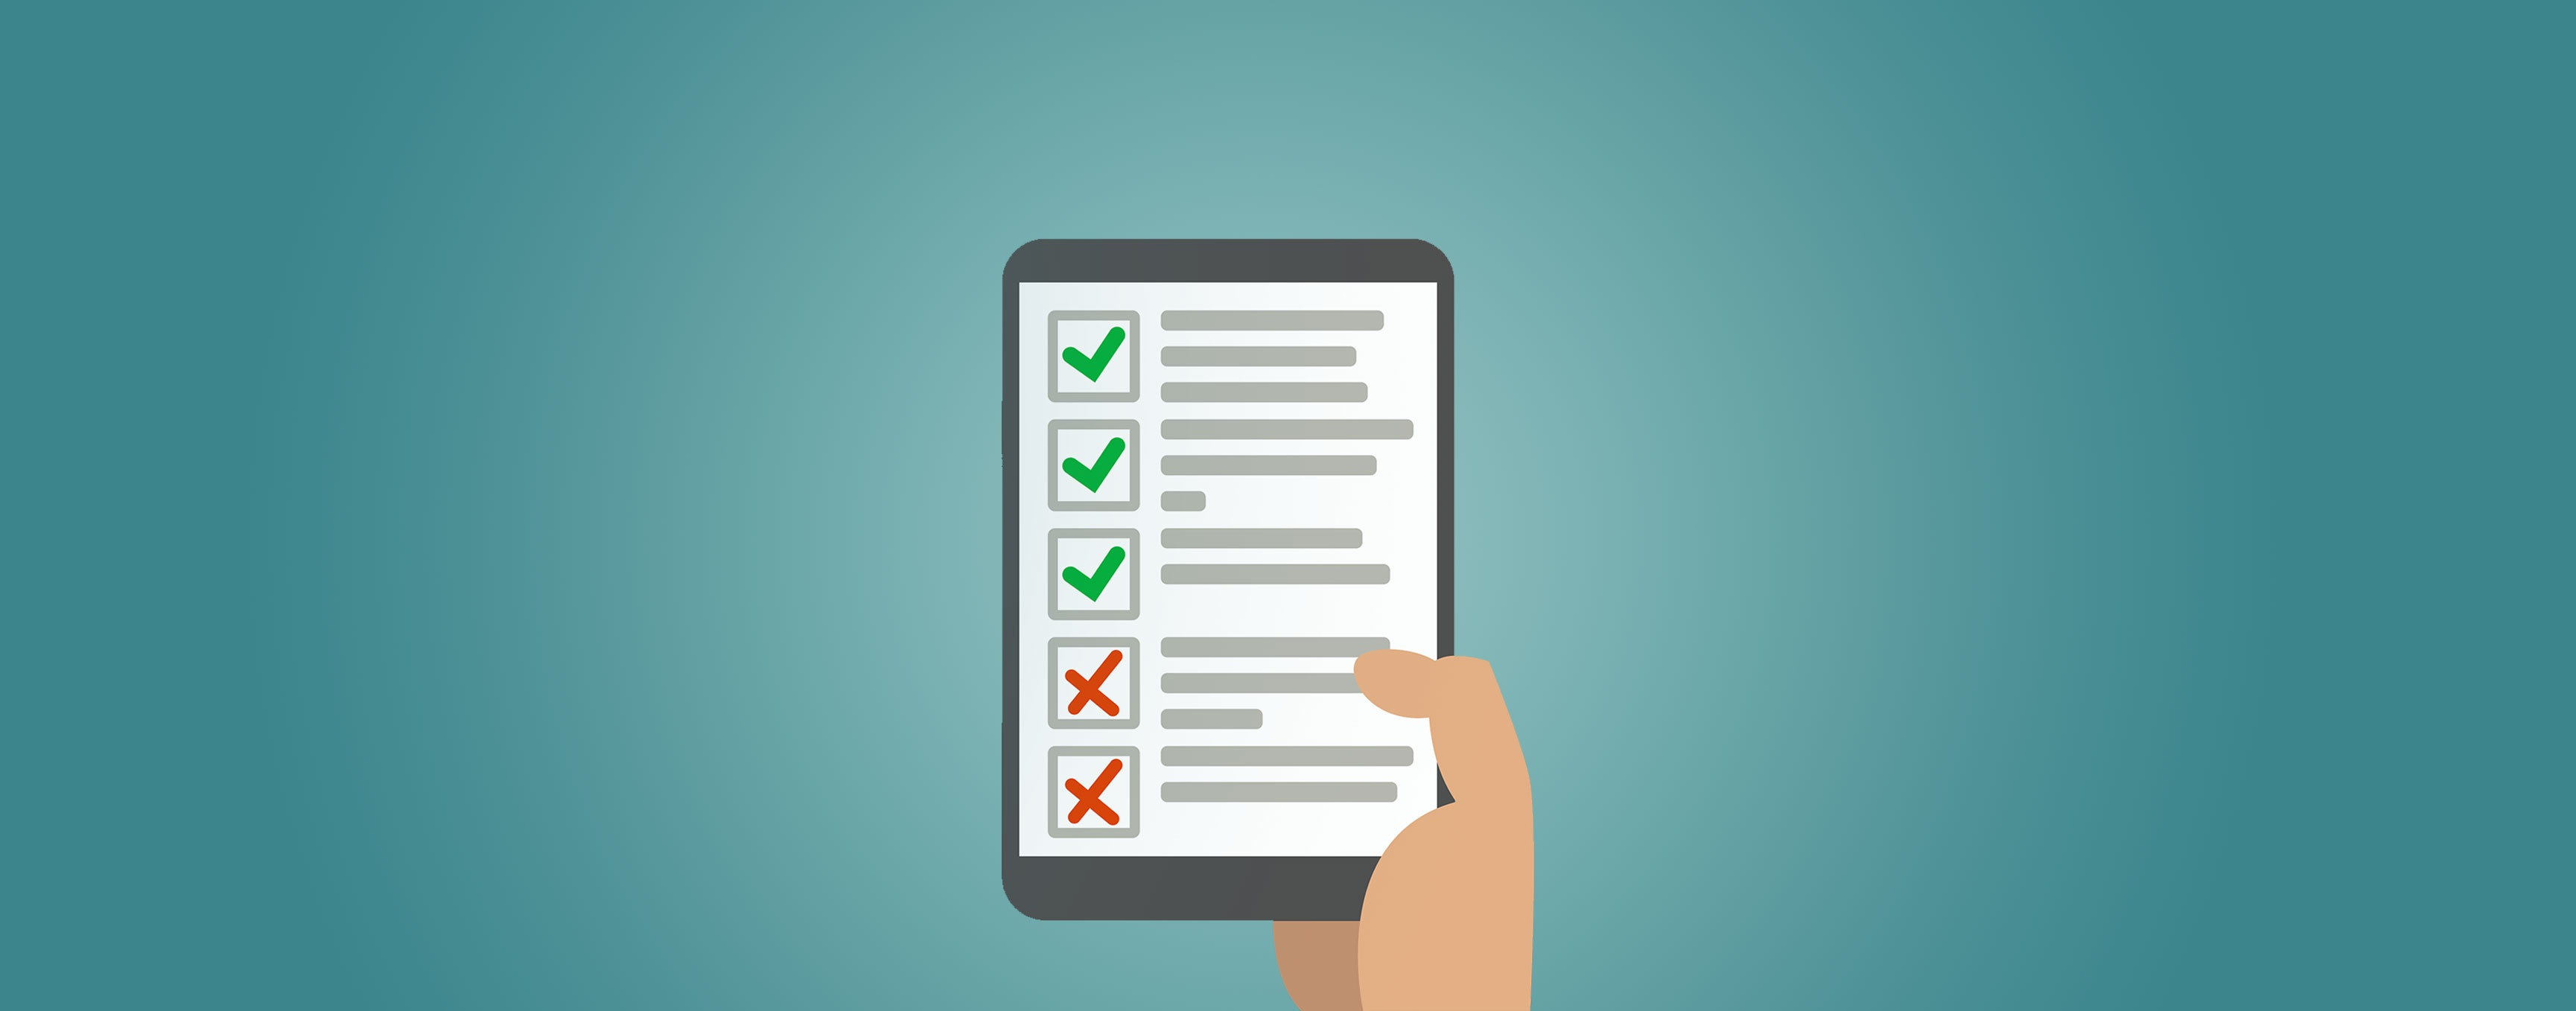 Website Redesign Checklist: The 10 Steps You Need to Be Successful